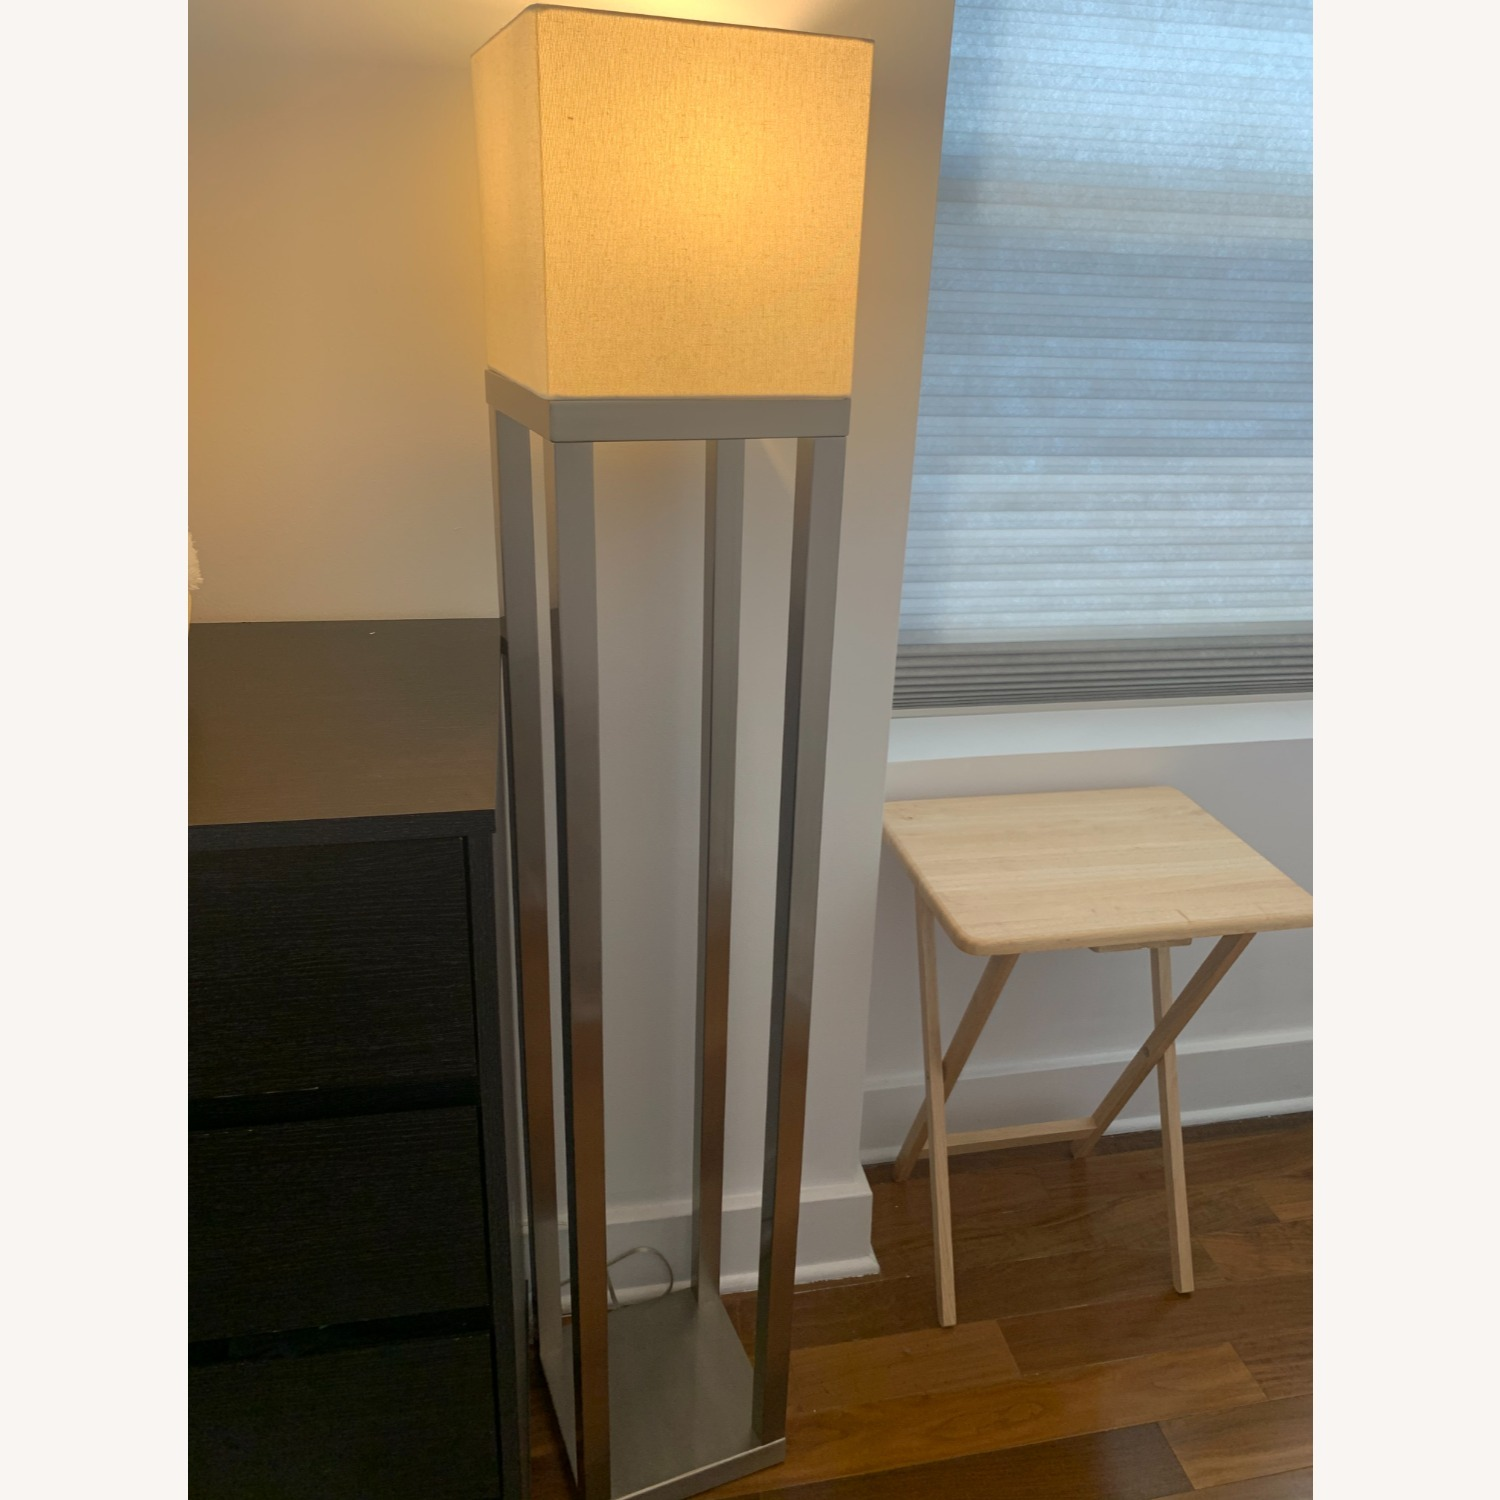 Crate & Barrel Aerin Floor Lamp - image-2